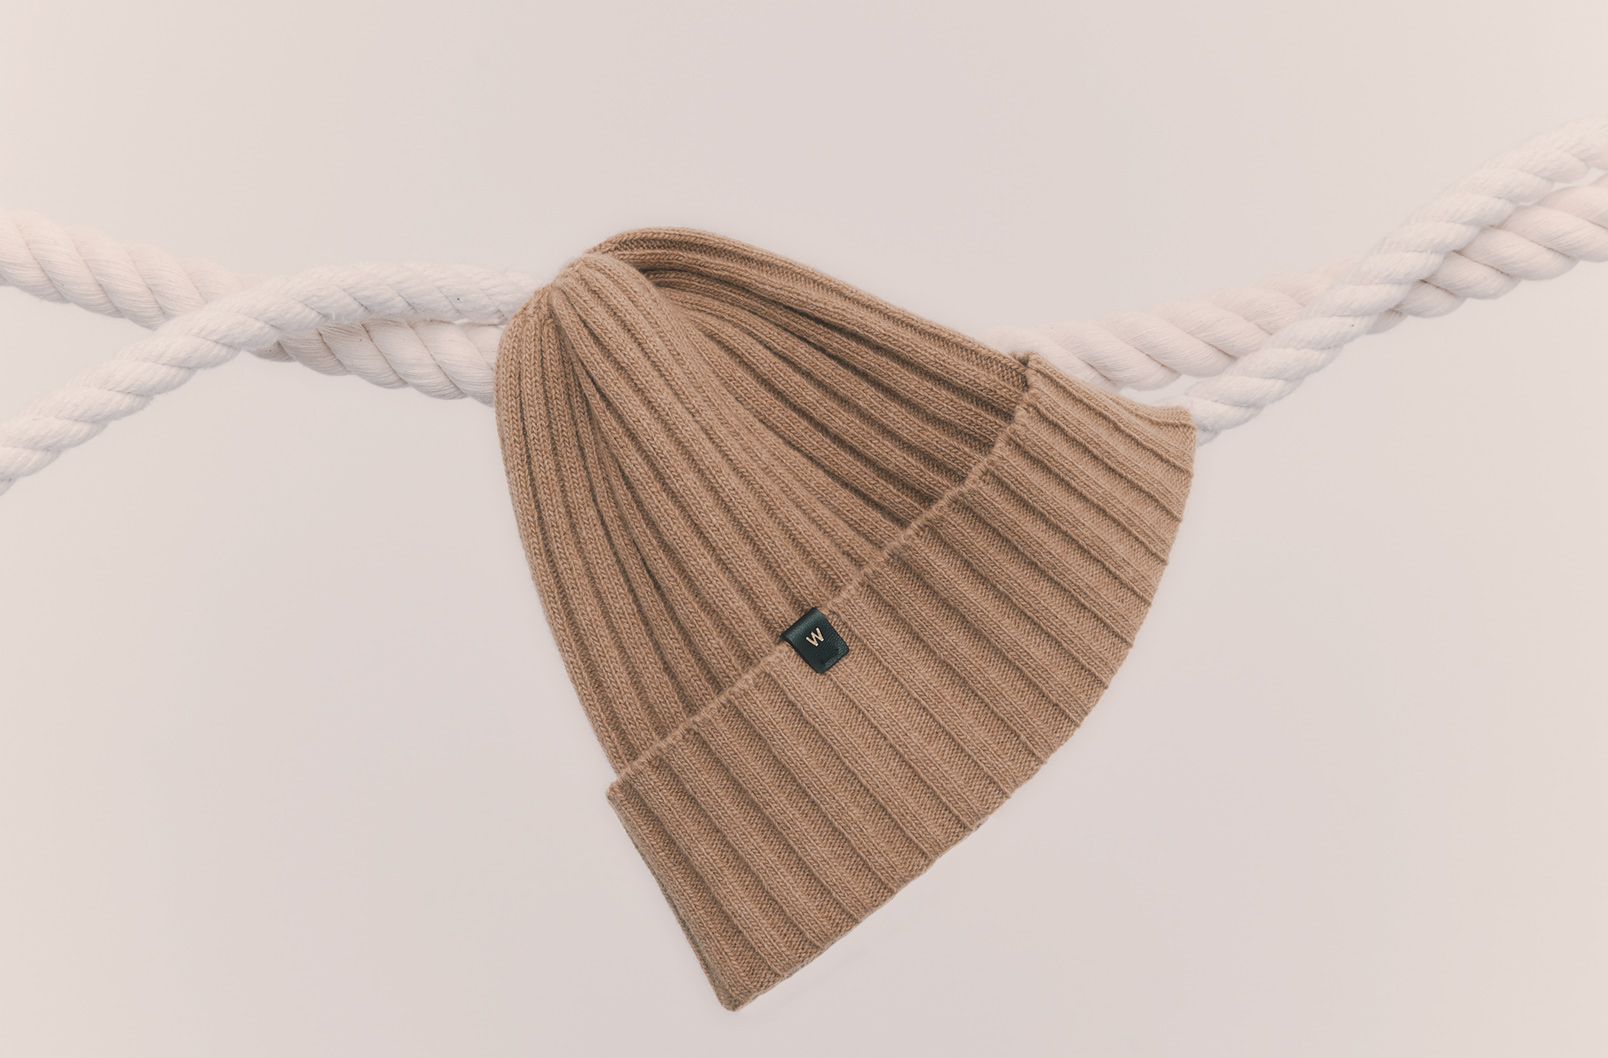 Monogramming detail on beanie